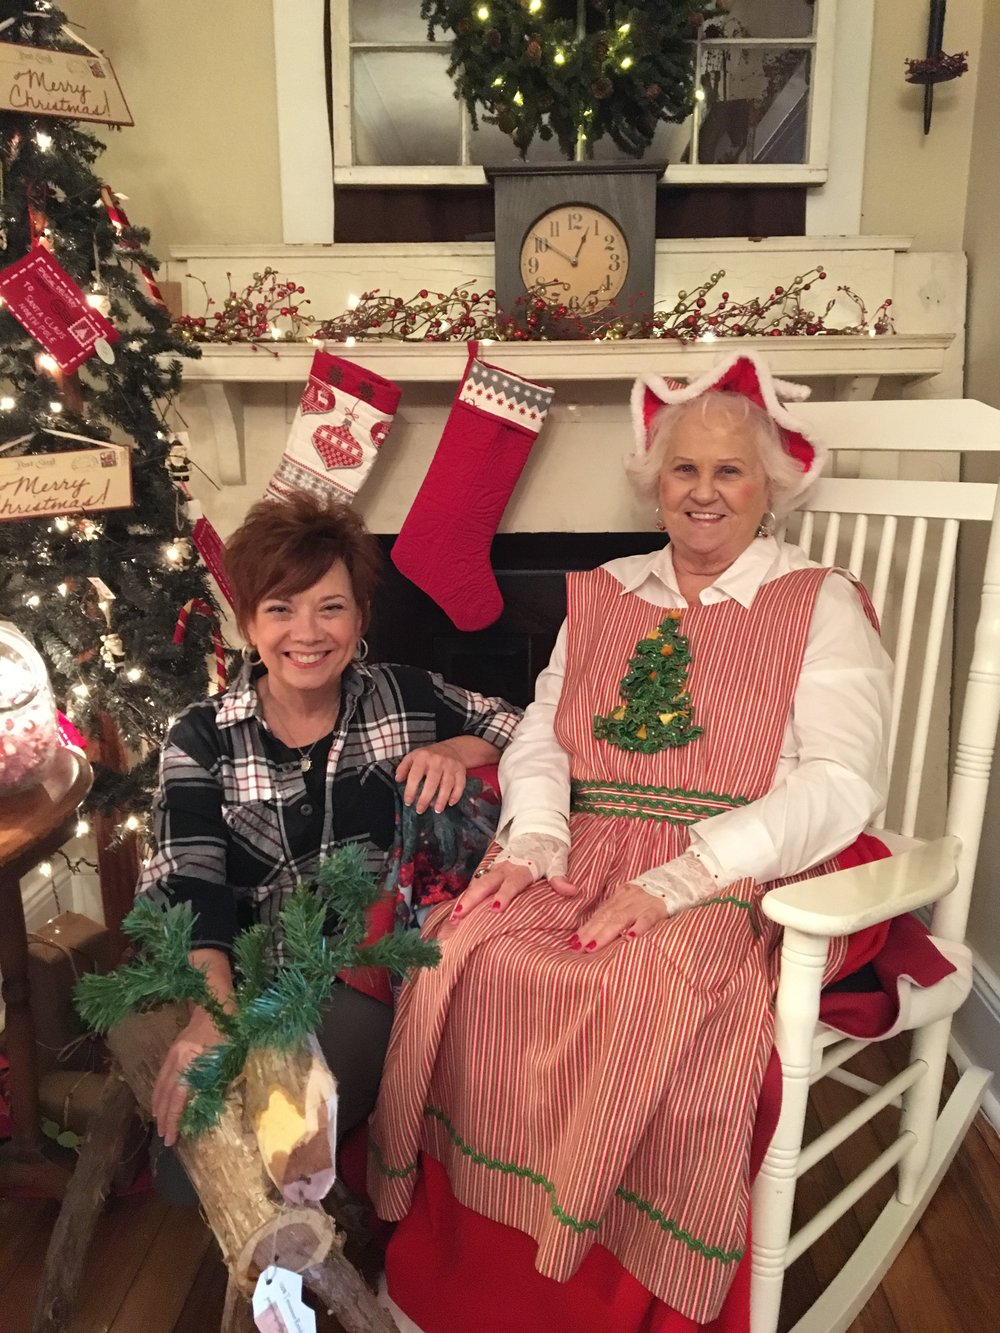 Me and Mrs. Claus at The Front Porch!